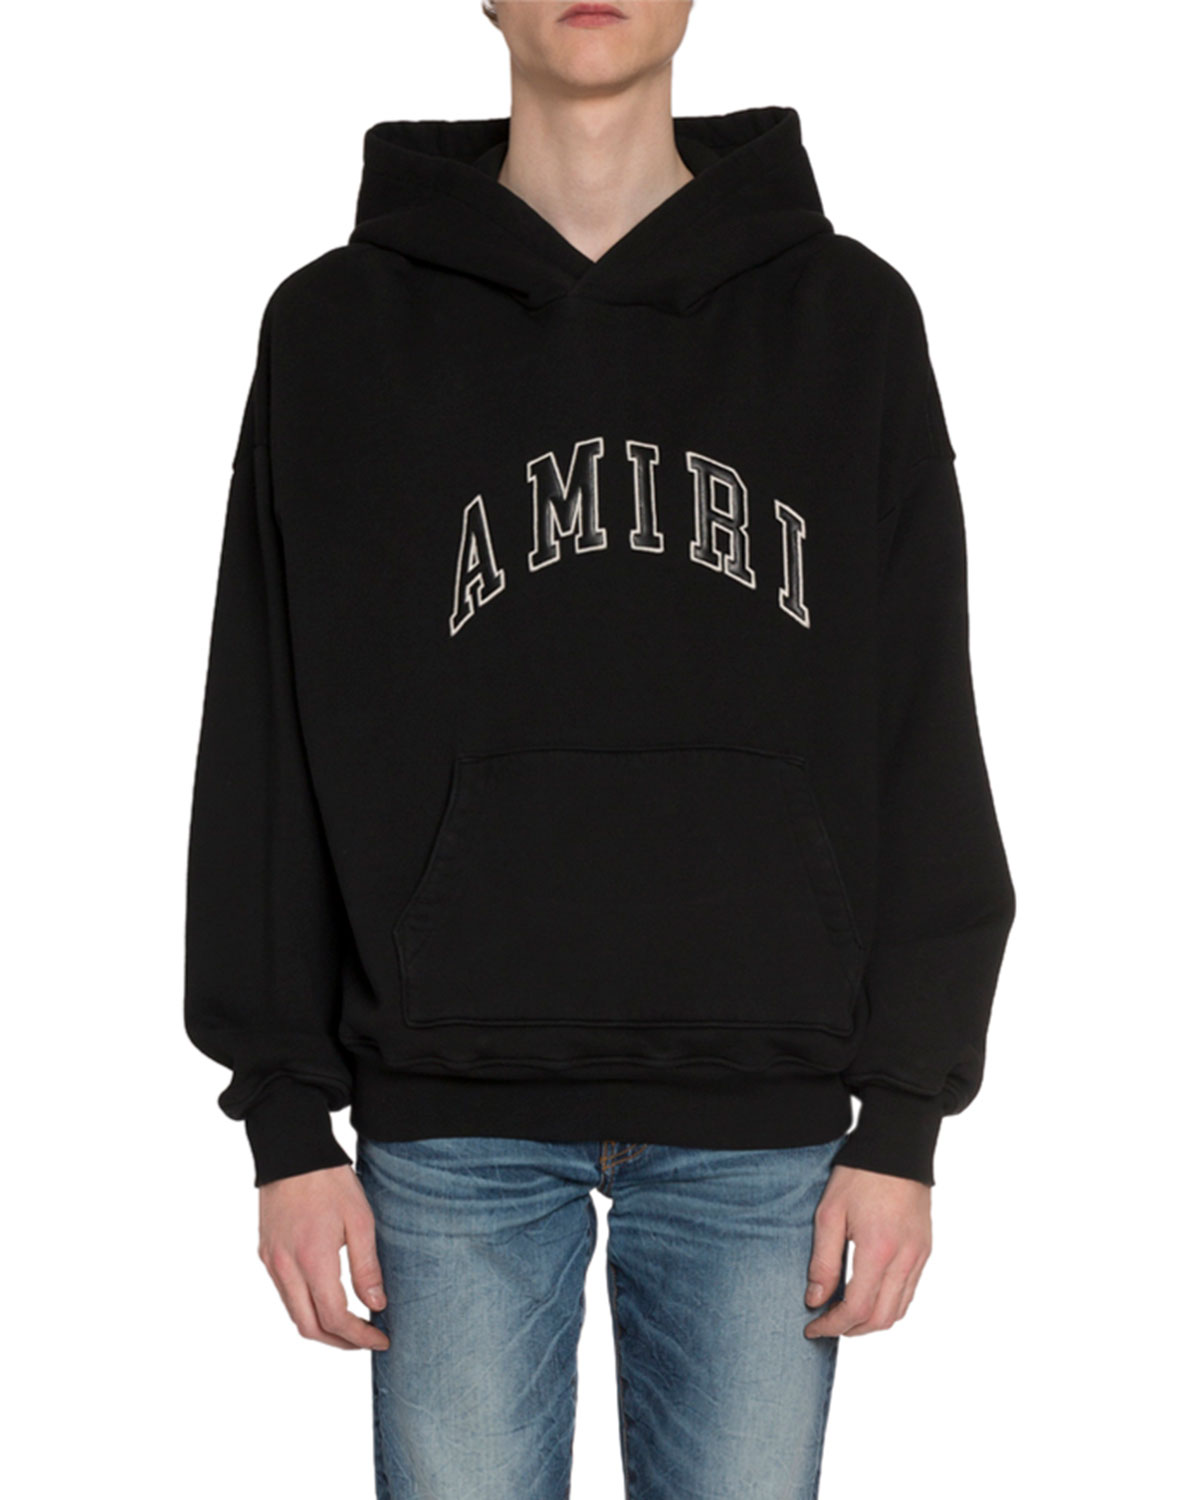 Amiri Hoodies MEN'S LEATHER LOGO APPLIQUE HOODIE